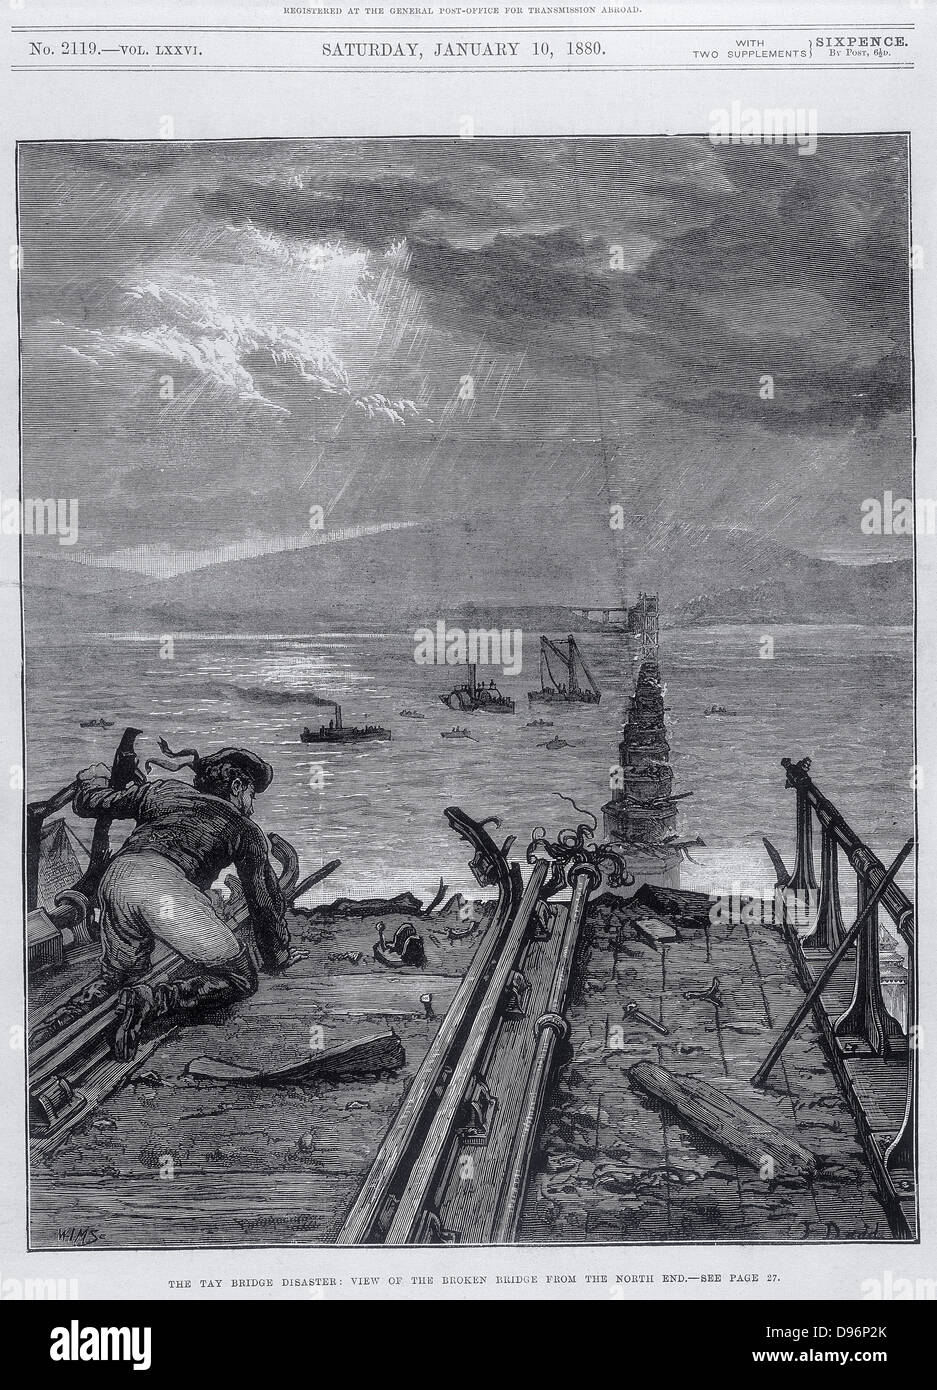 Tay Bridge disaster,  28 December 1779. View of broken bridge from north end. Engraving from 'The Illustrated - Stock Image